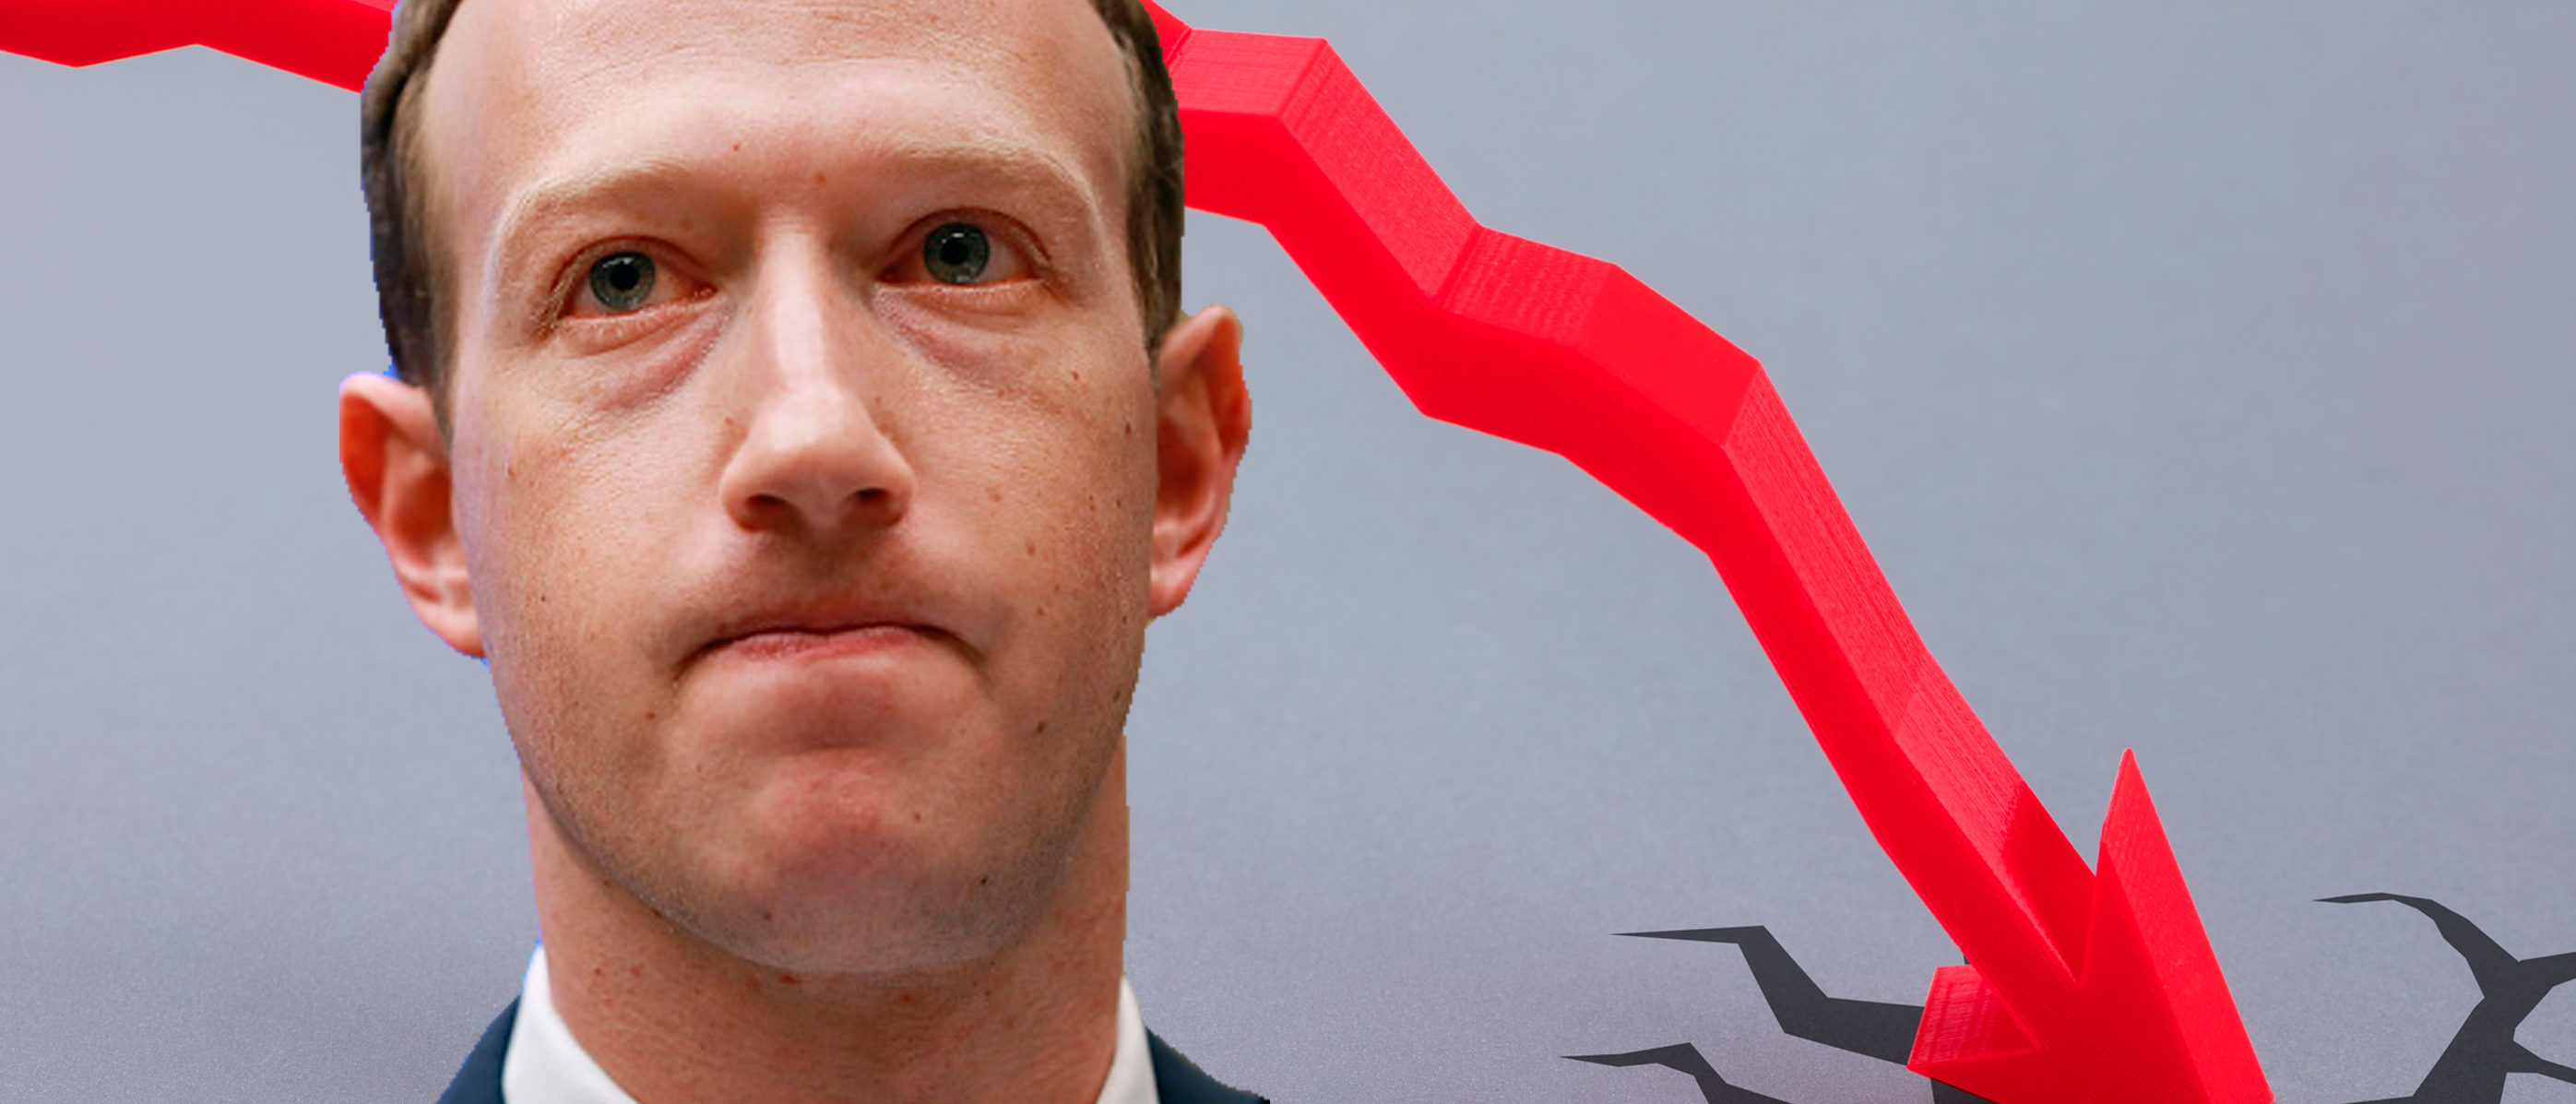 After having the slowest quarter in its history, Facebook market value plummeted almost $120 billion, making it the largest drop in market history. Images: Shutterstock.com, Chip Somodevilla/Getty Images. Edits by Kyle Perisic.